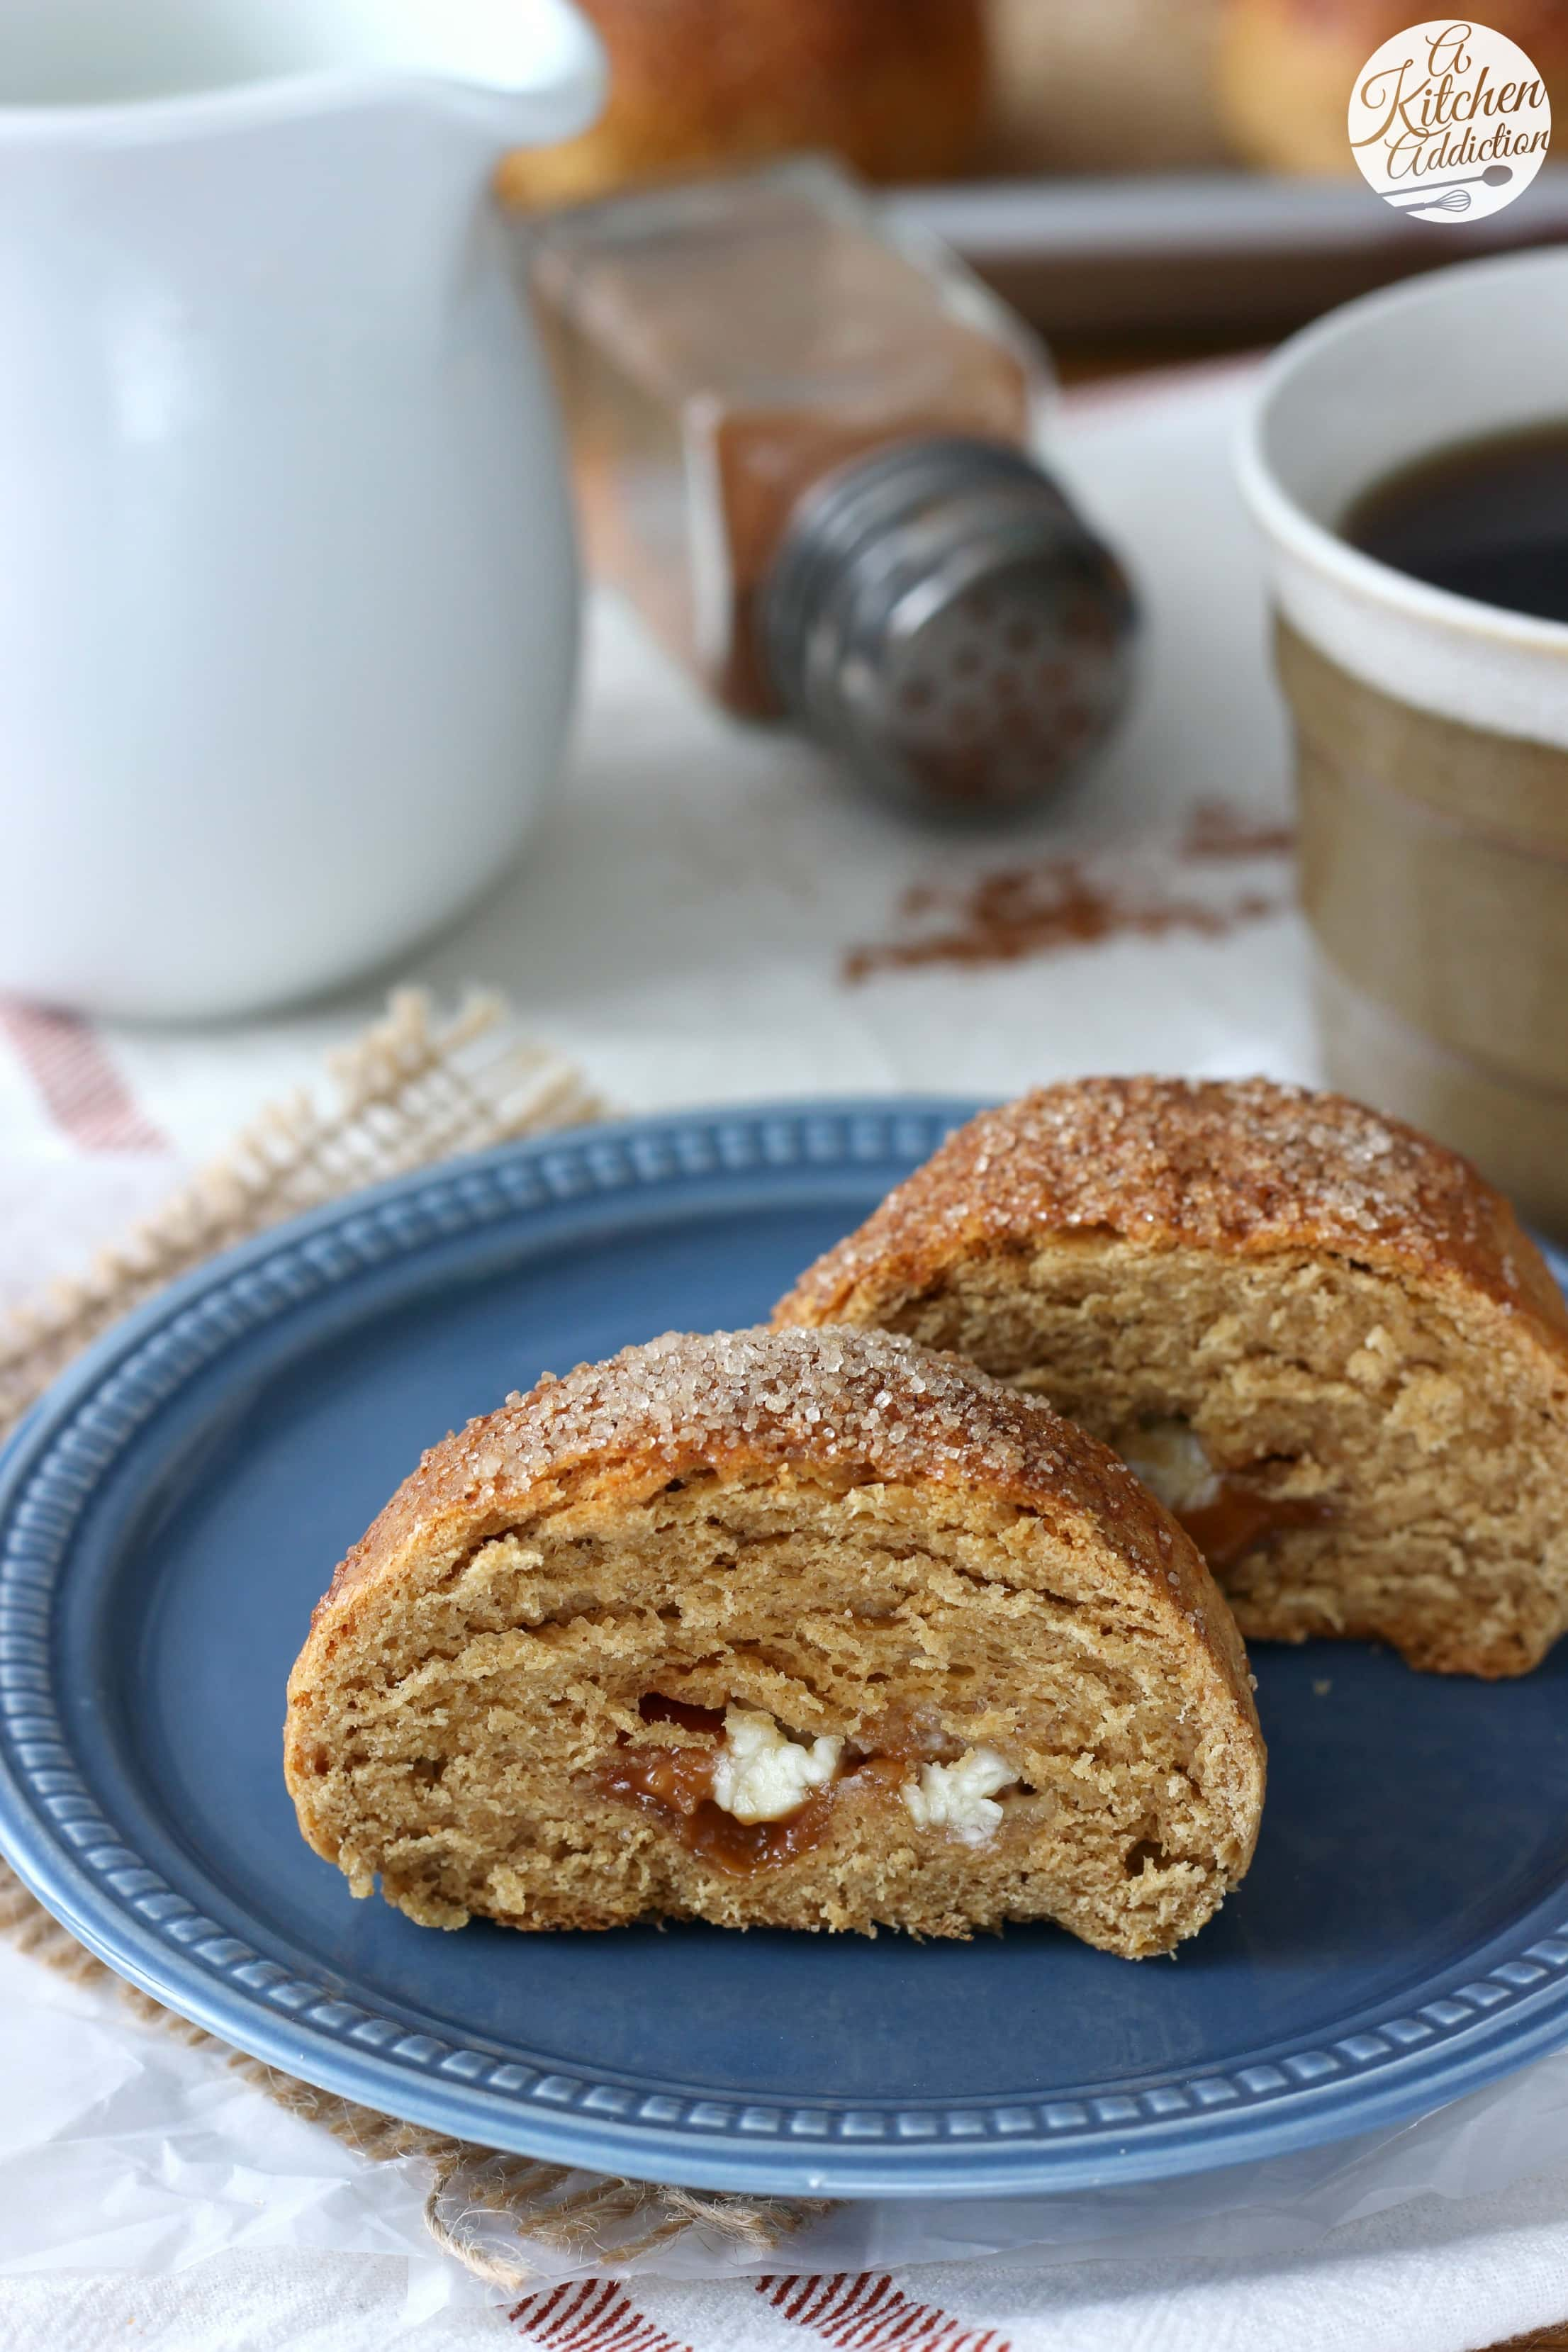 Gingerbread Brioche Rolls filled with white chocolate and caramel bits from A Kitchen Addiction